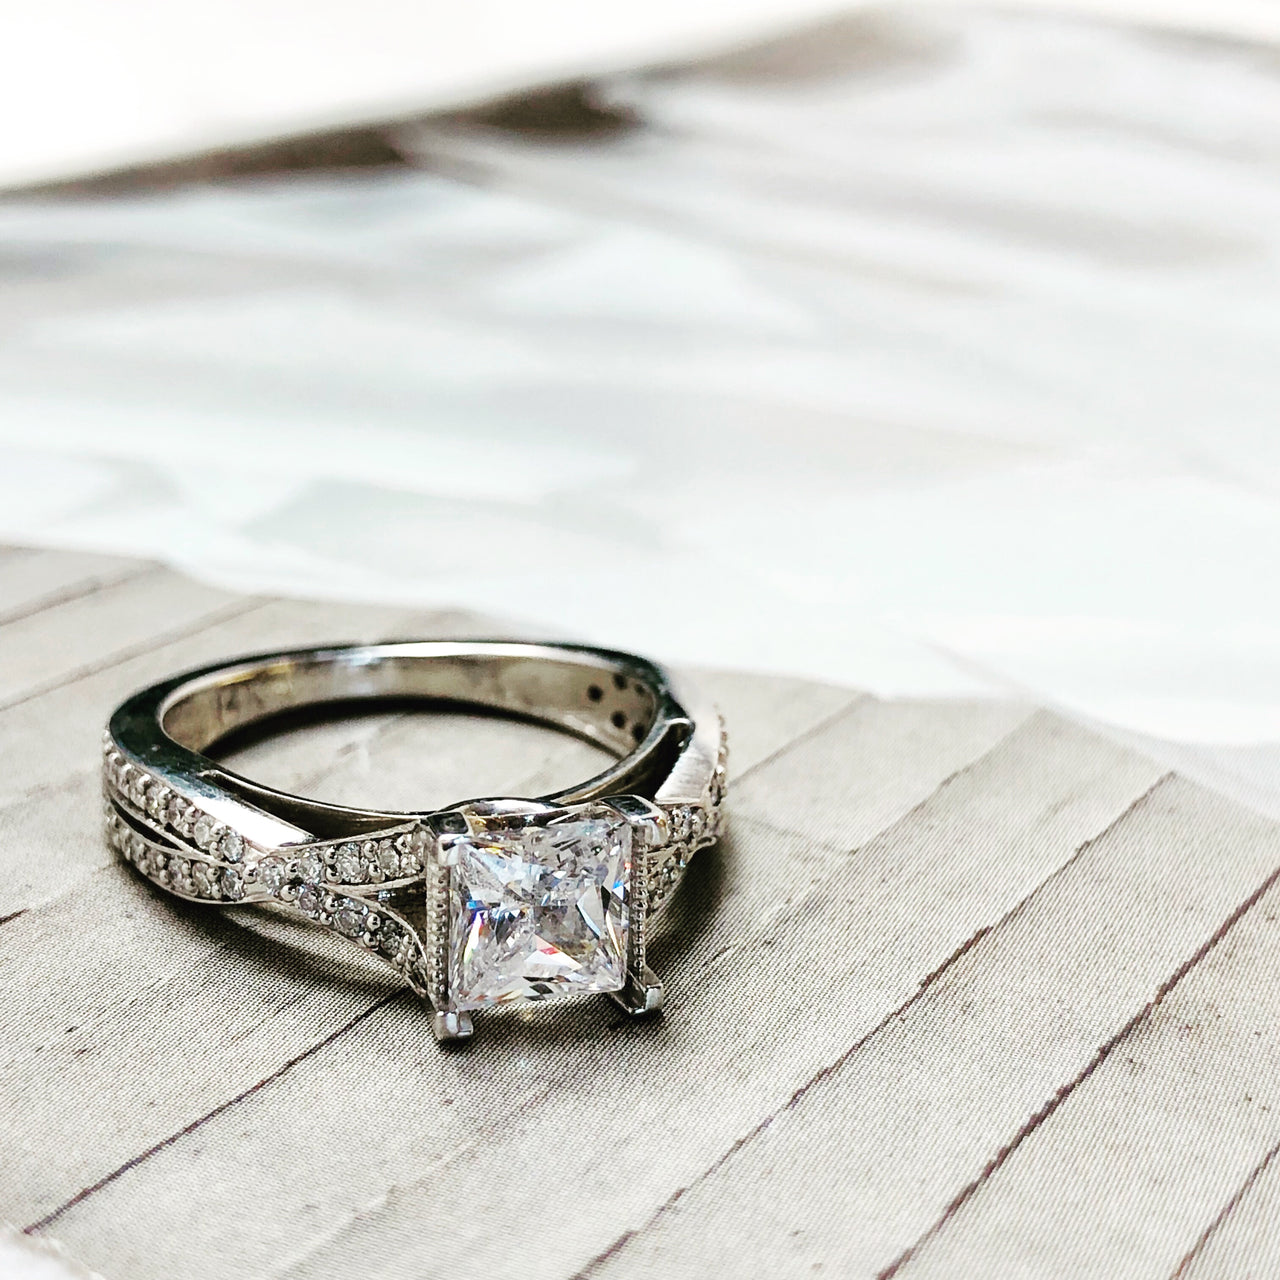 14K White Gold Semi-Mount Diamond Ring.